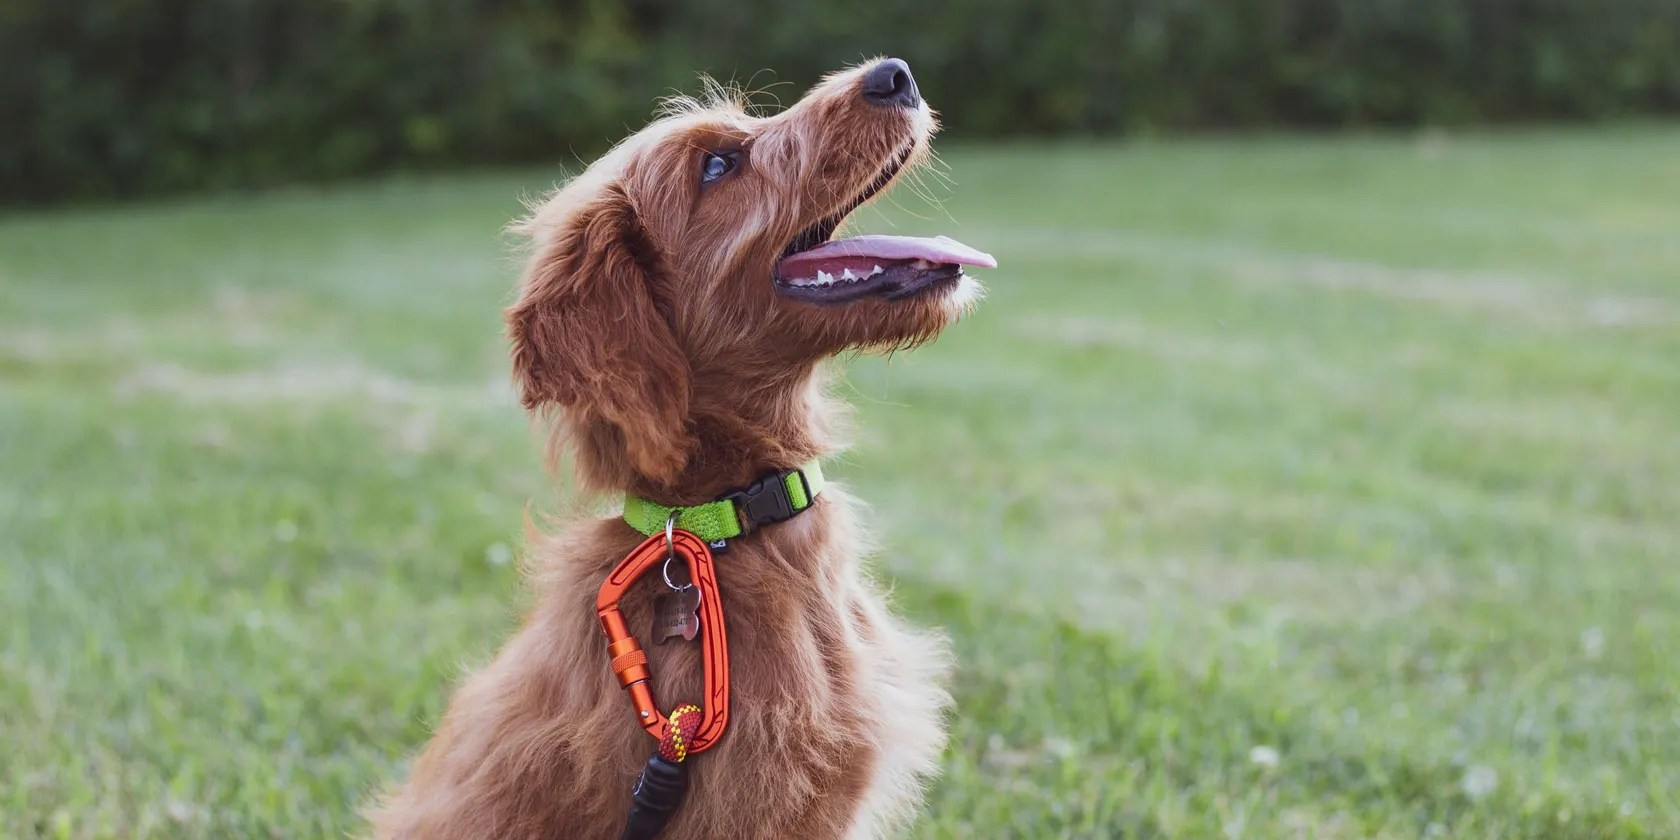 The 5 Best Dog Training Apps for Android and iPhone